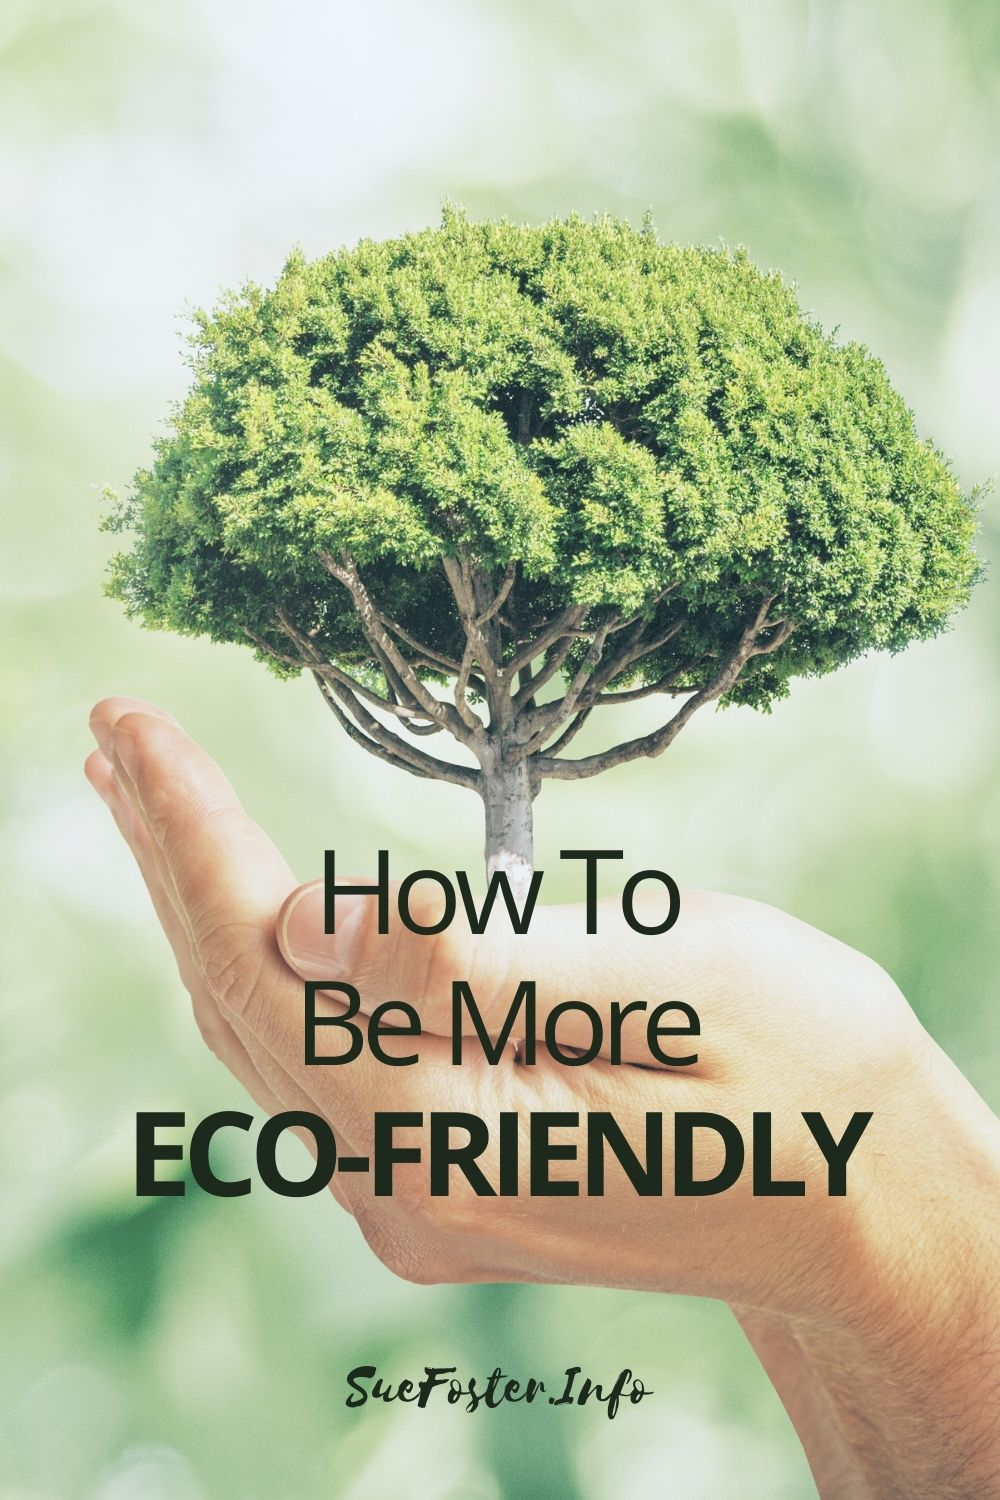 Follow these tips to become more eco-friendly to the environment.